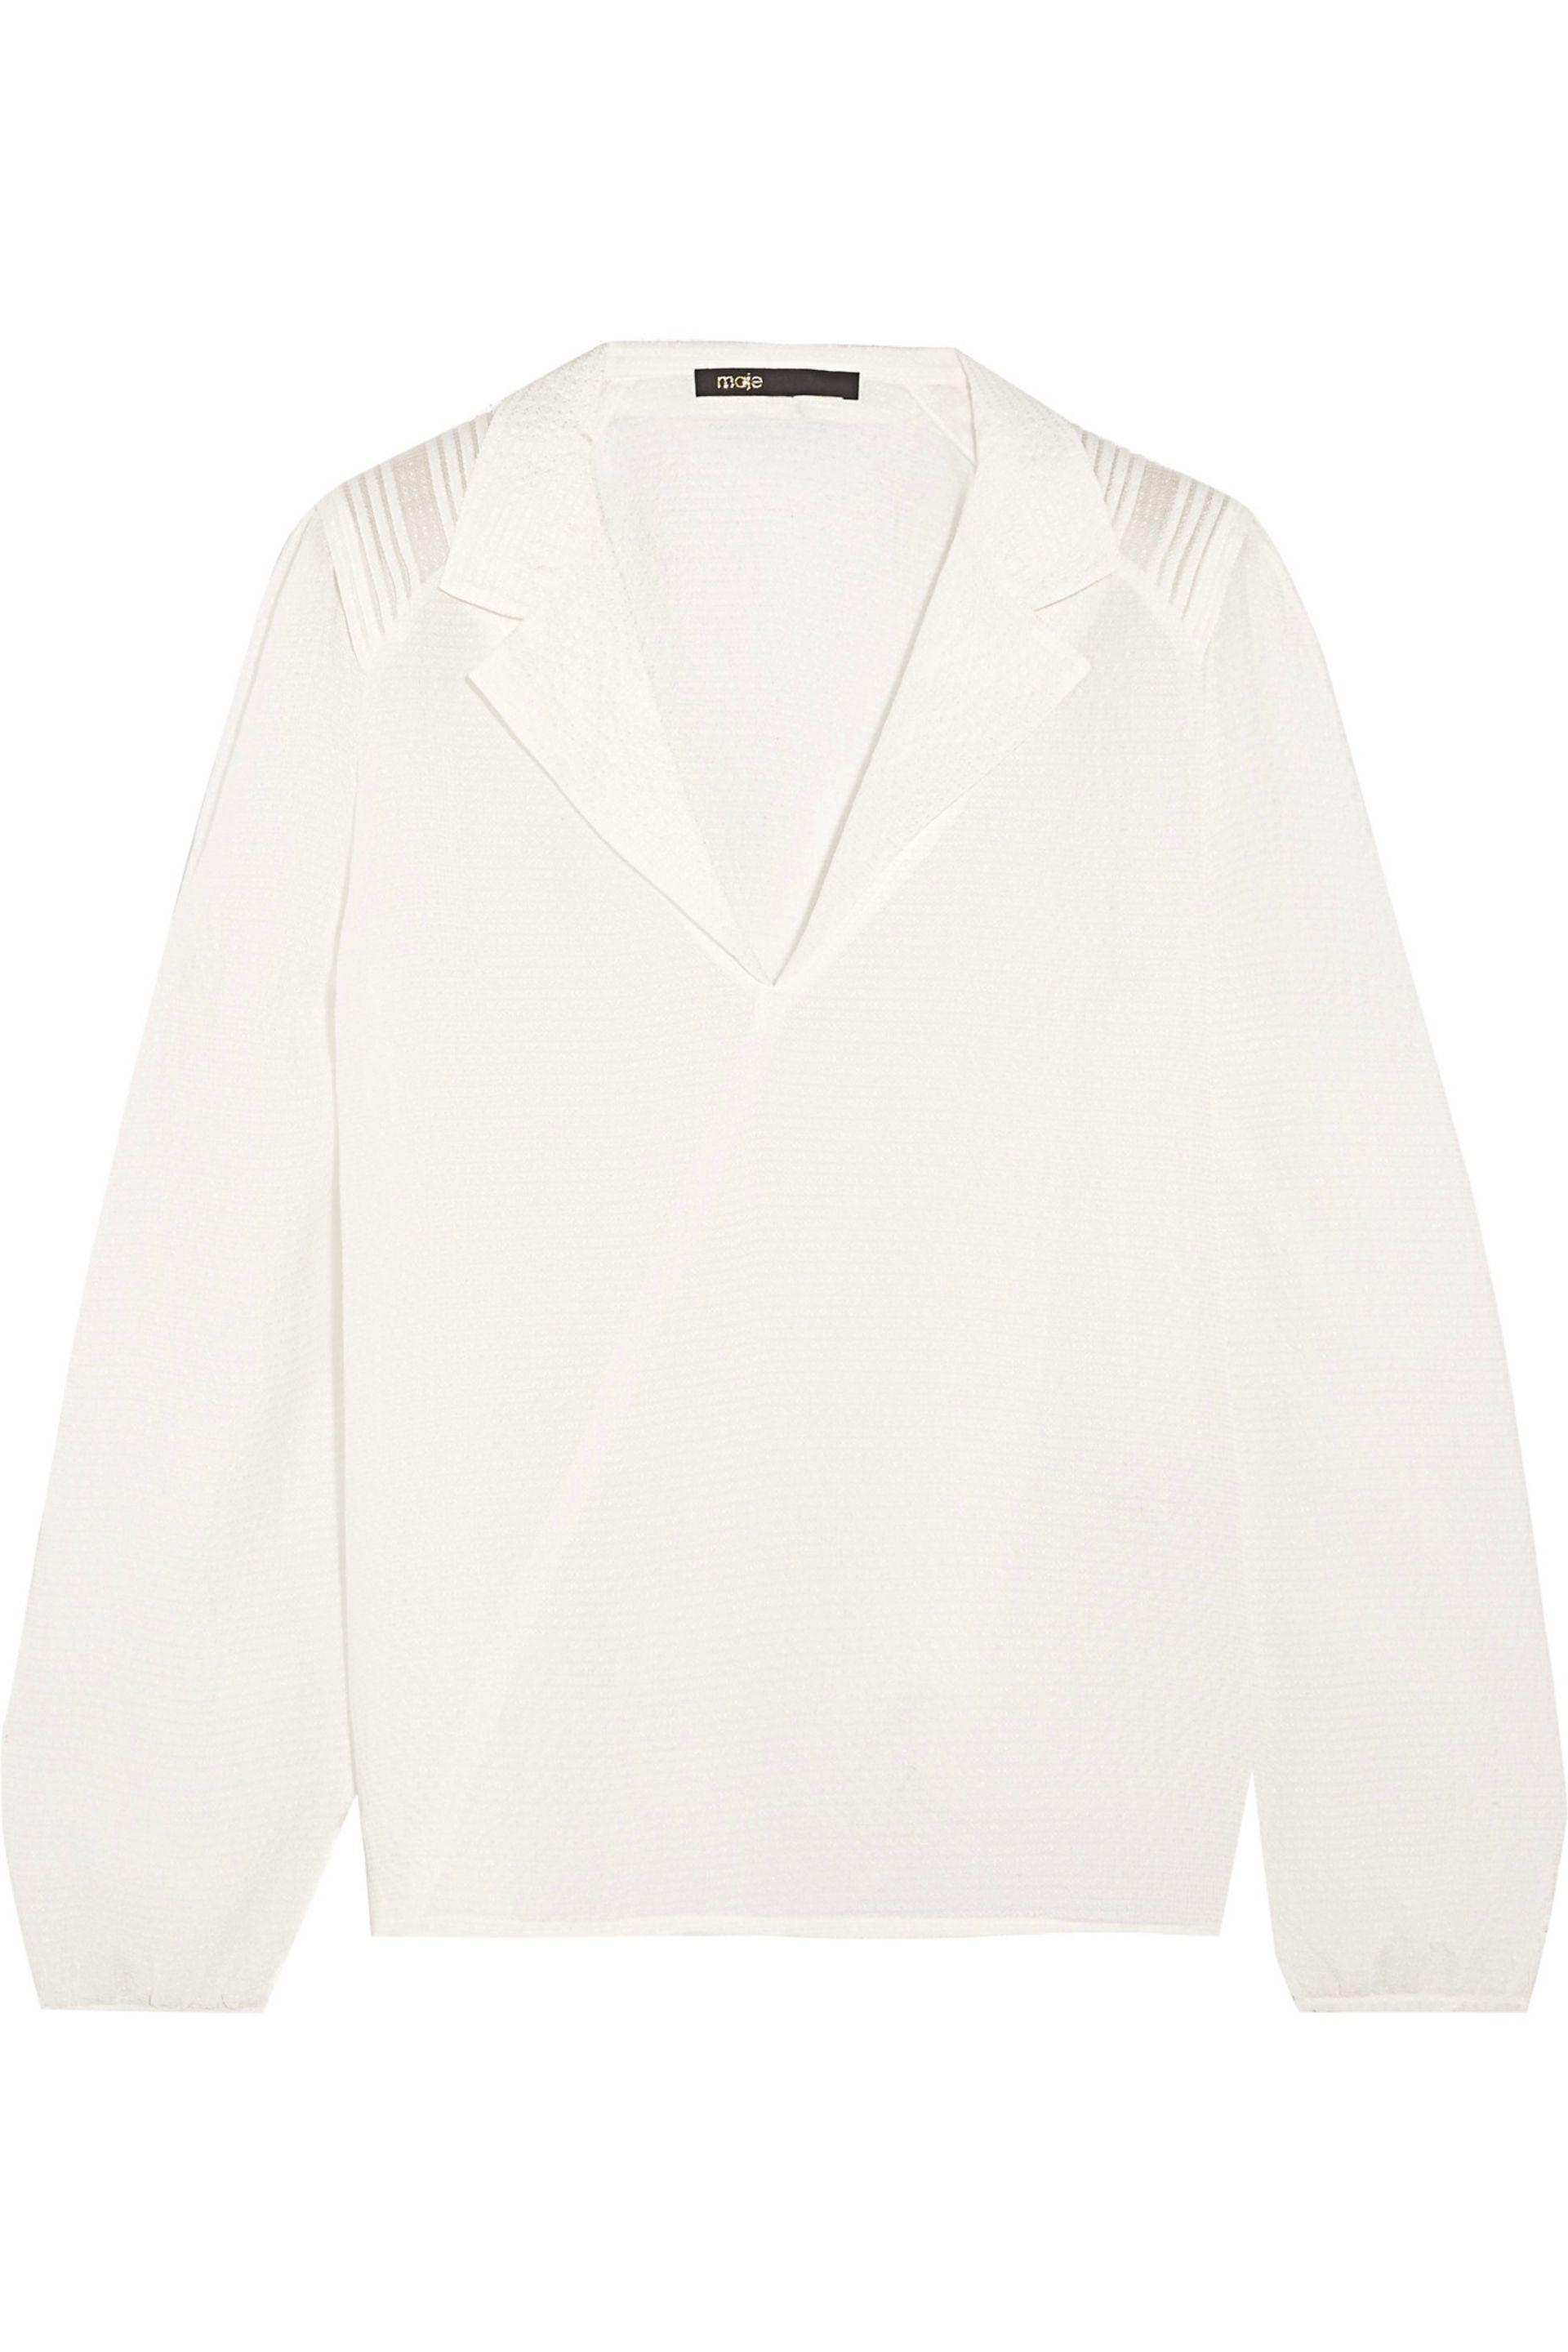 Maje. Women's Textured Silk-crepe Blouse